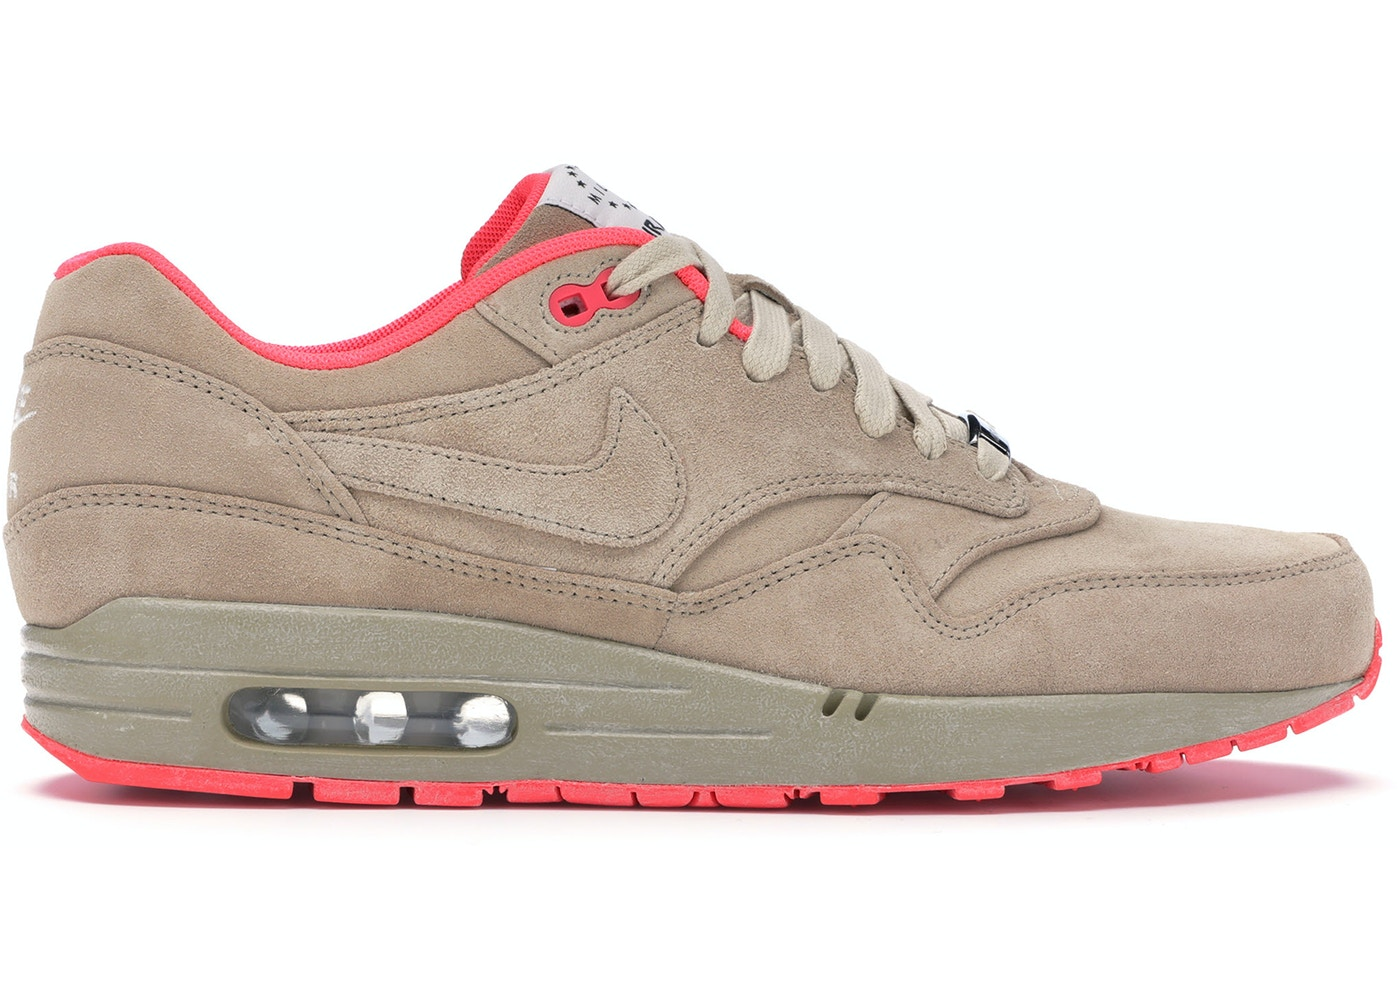 new product c4933 e4e25 Air Max 1 Home Turf Milan - 587922-226